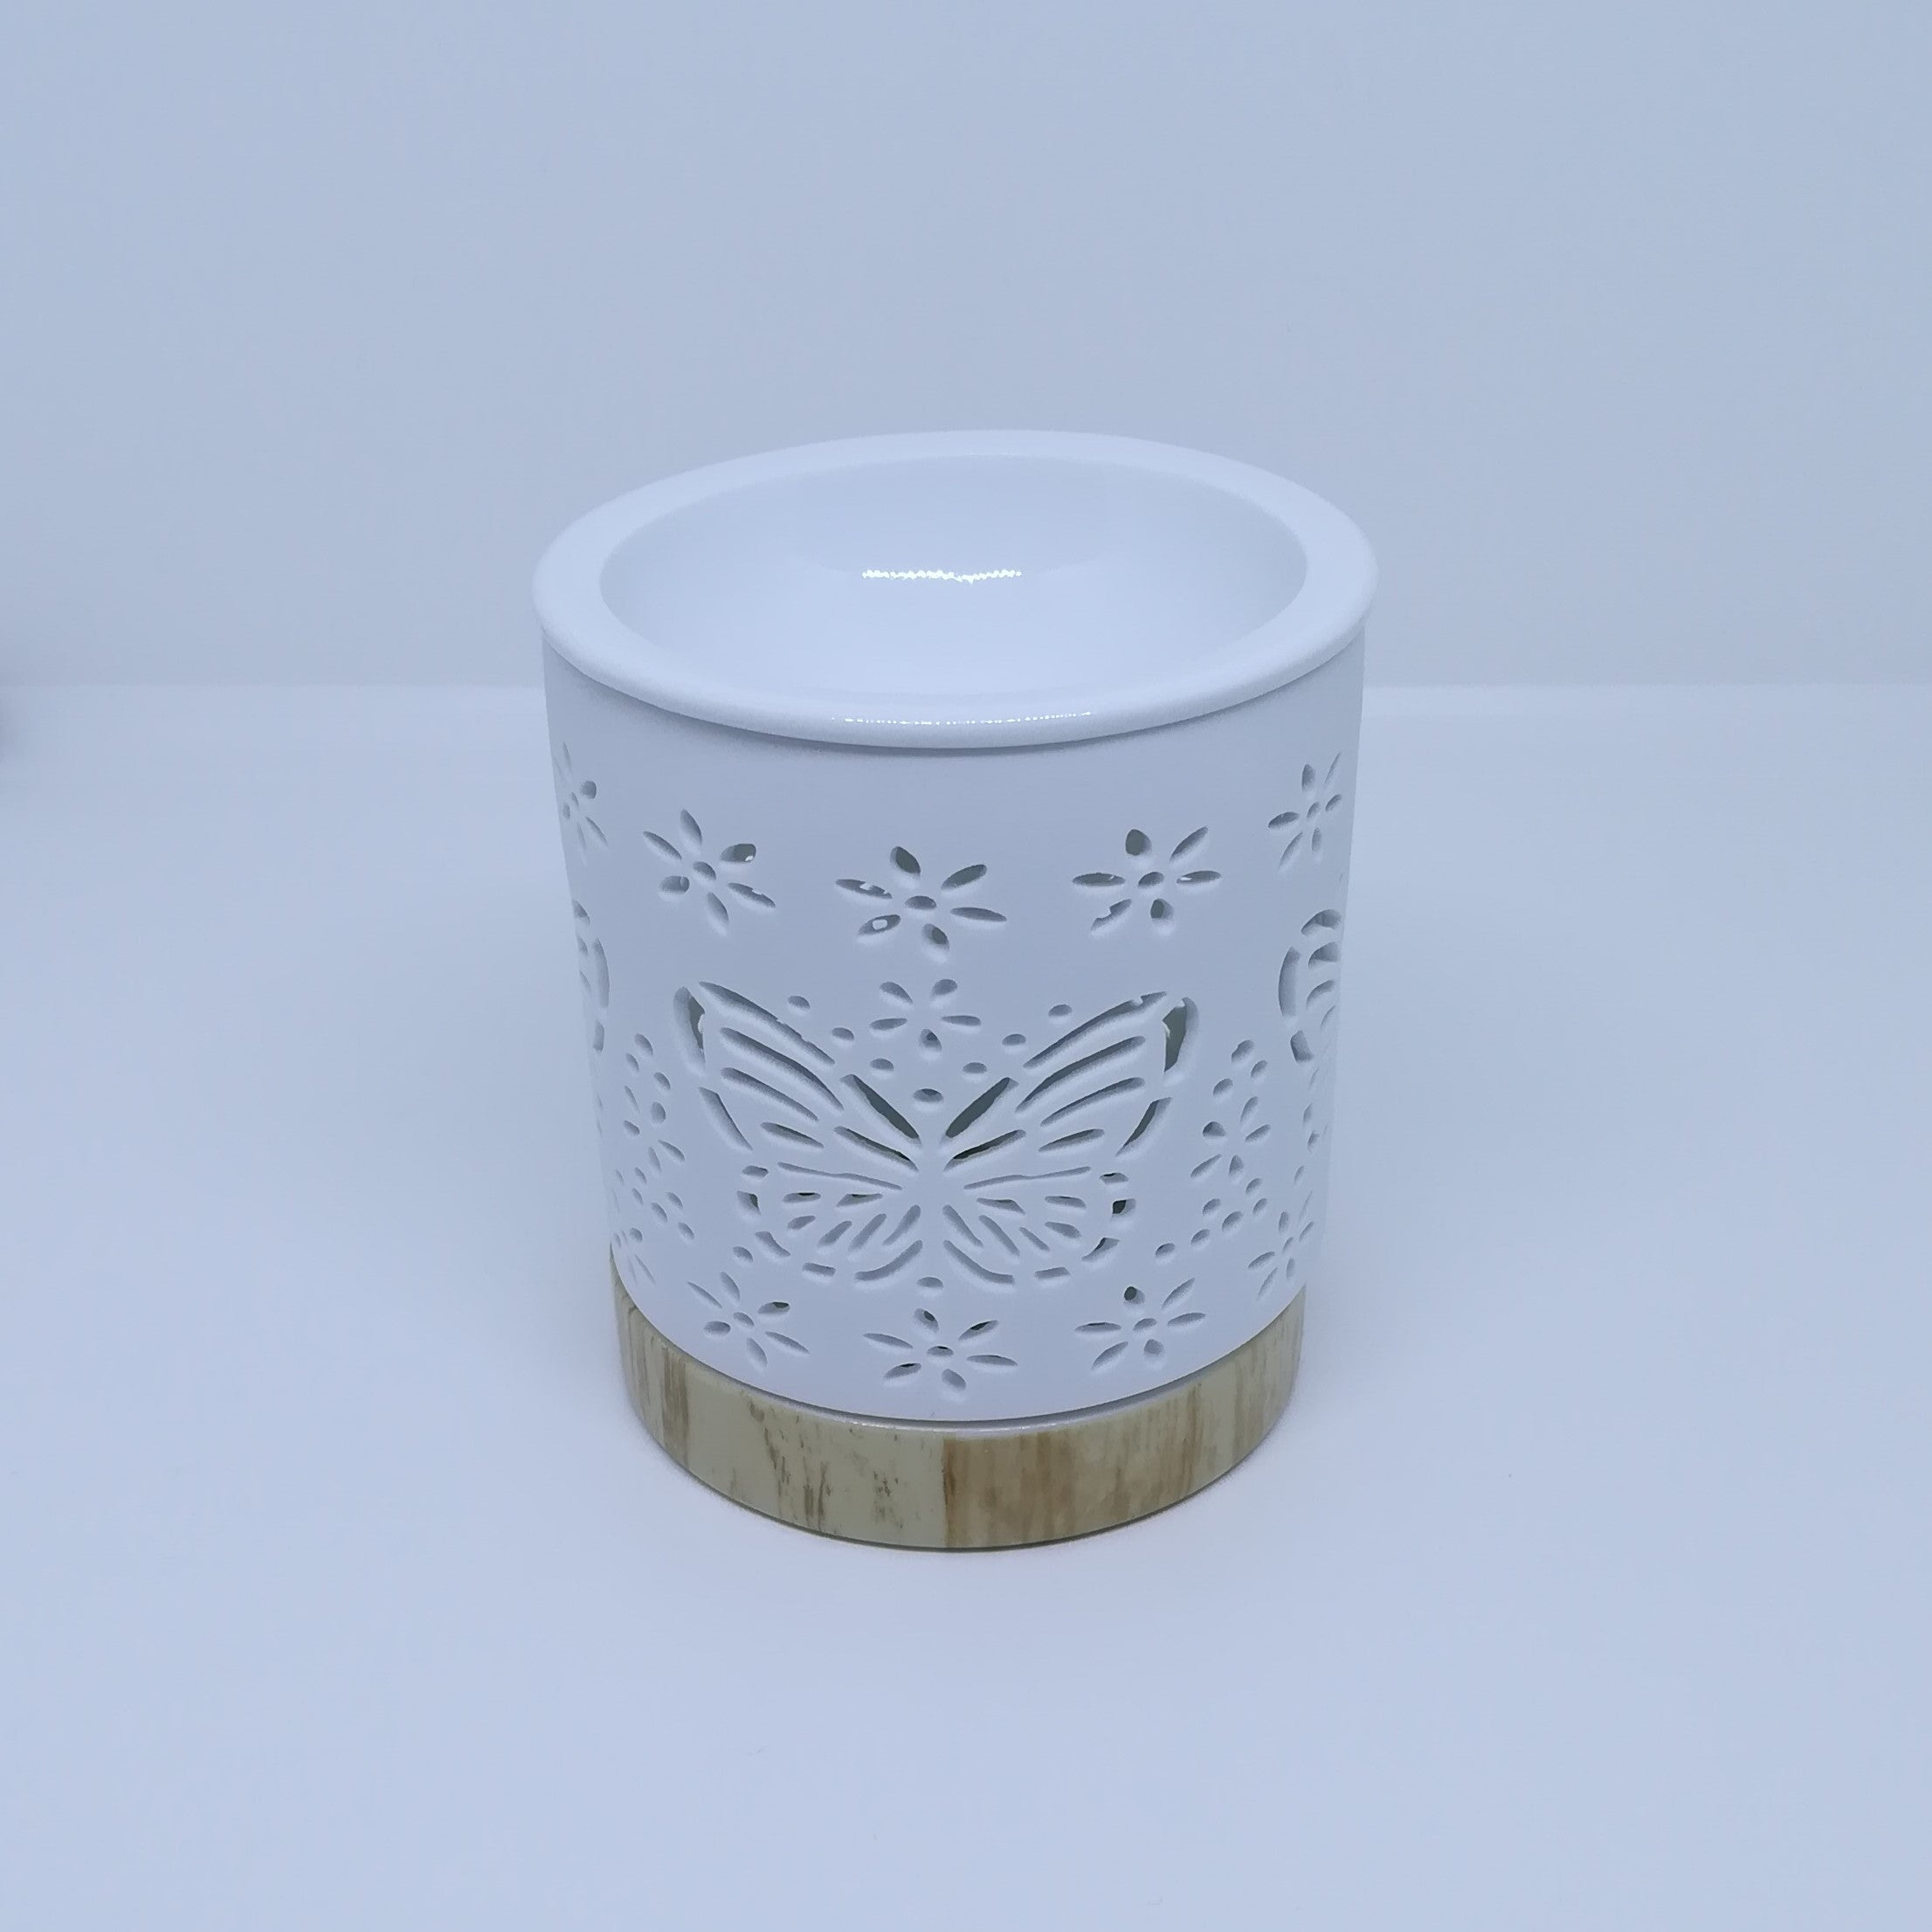 Ceramic white wax melt burner with ceramic wood effect base pictured under natural light.